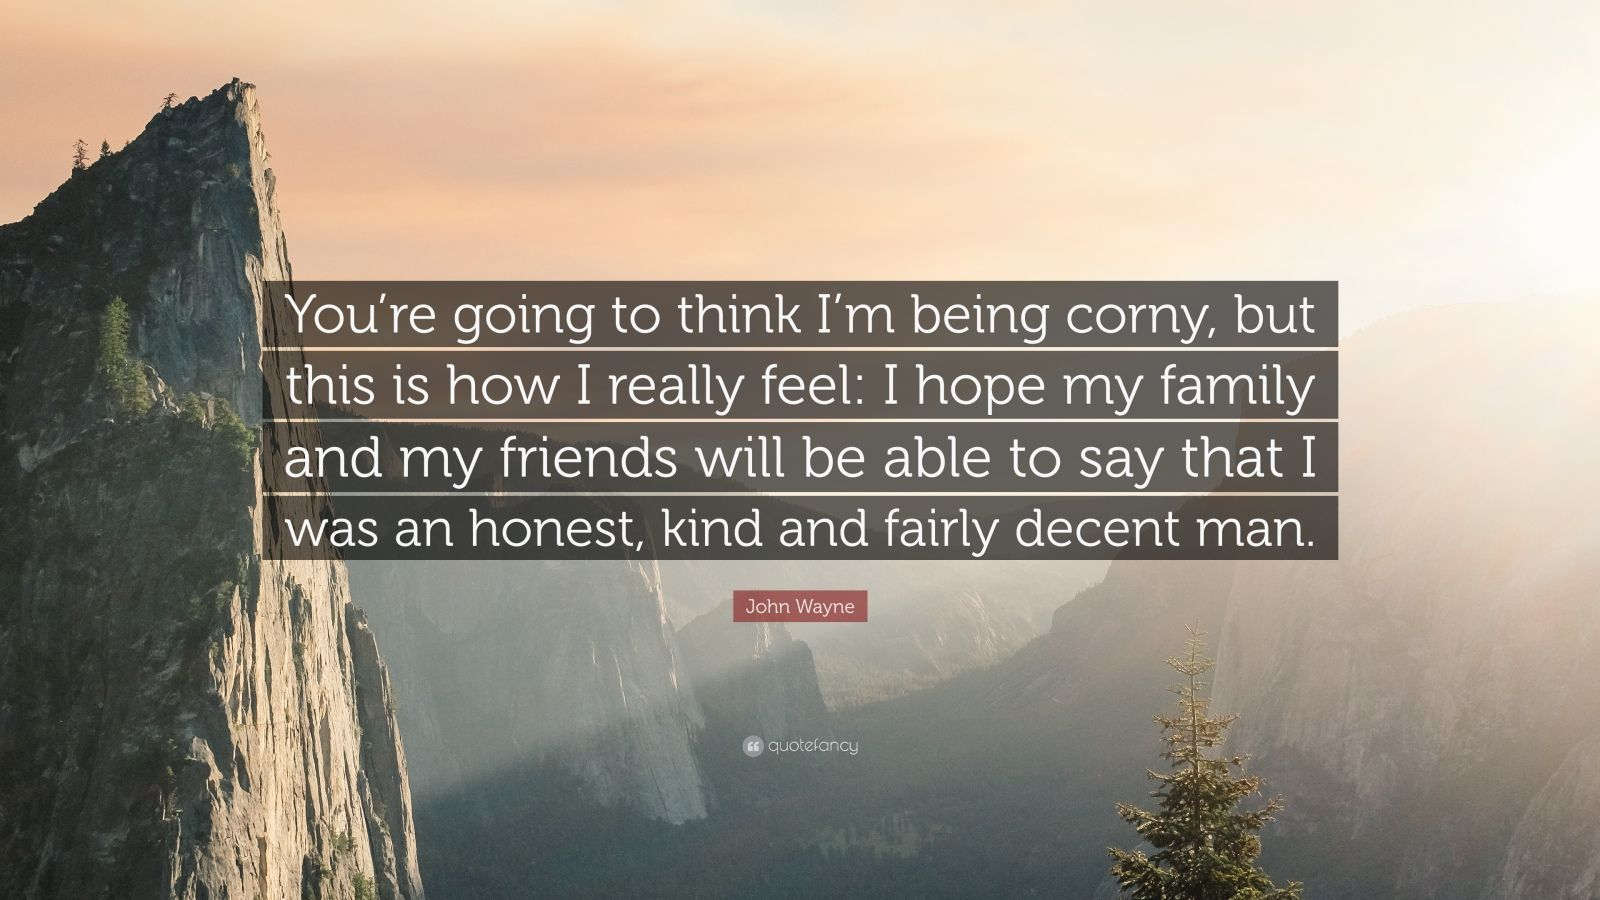 """John Wayne Quote: """"You're going to think I'm being corny, but this is how I really feel: I hope my family and my friends will be able to say that I was an honest, kind and fairly decent man."""""""